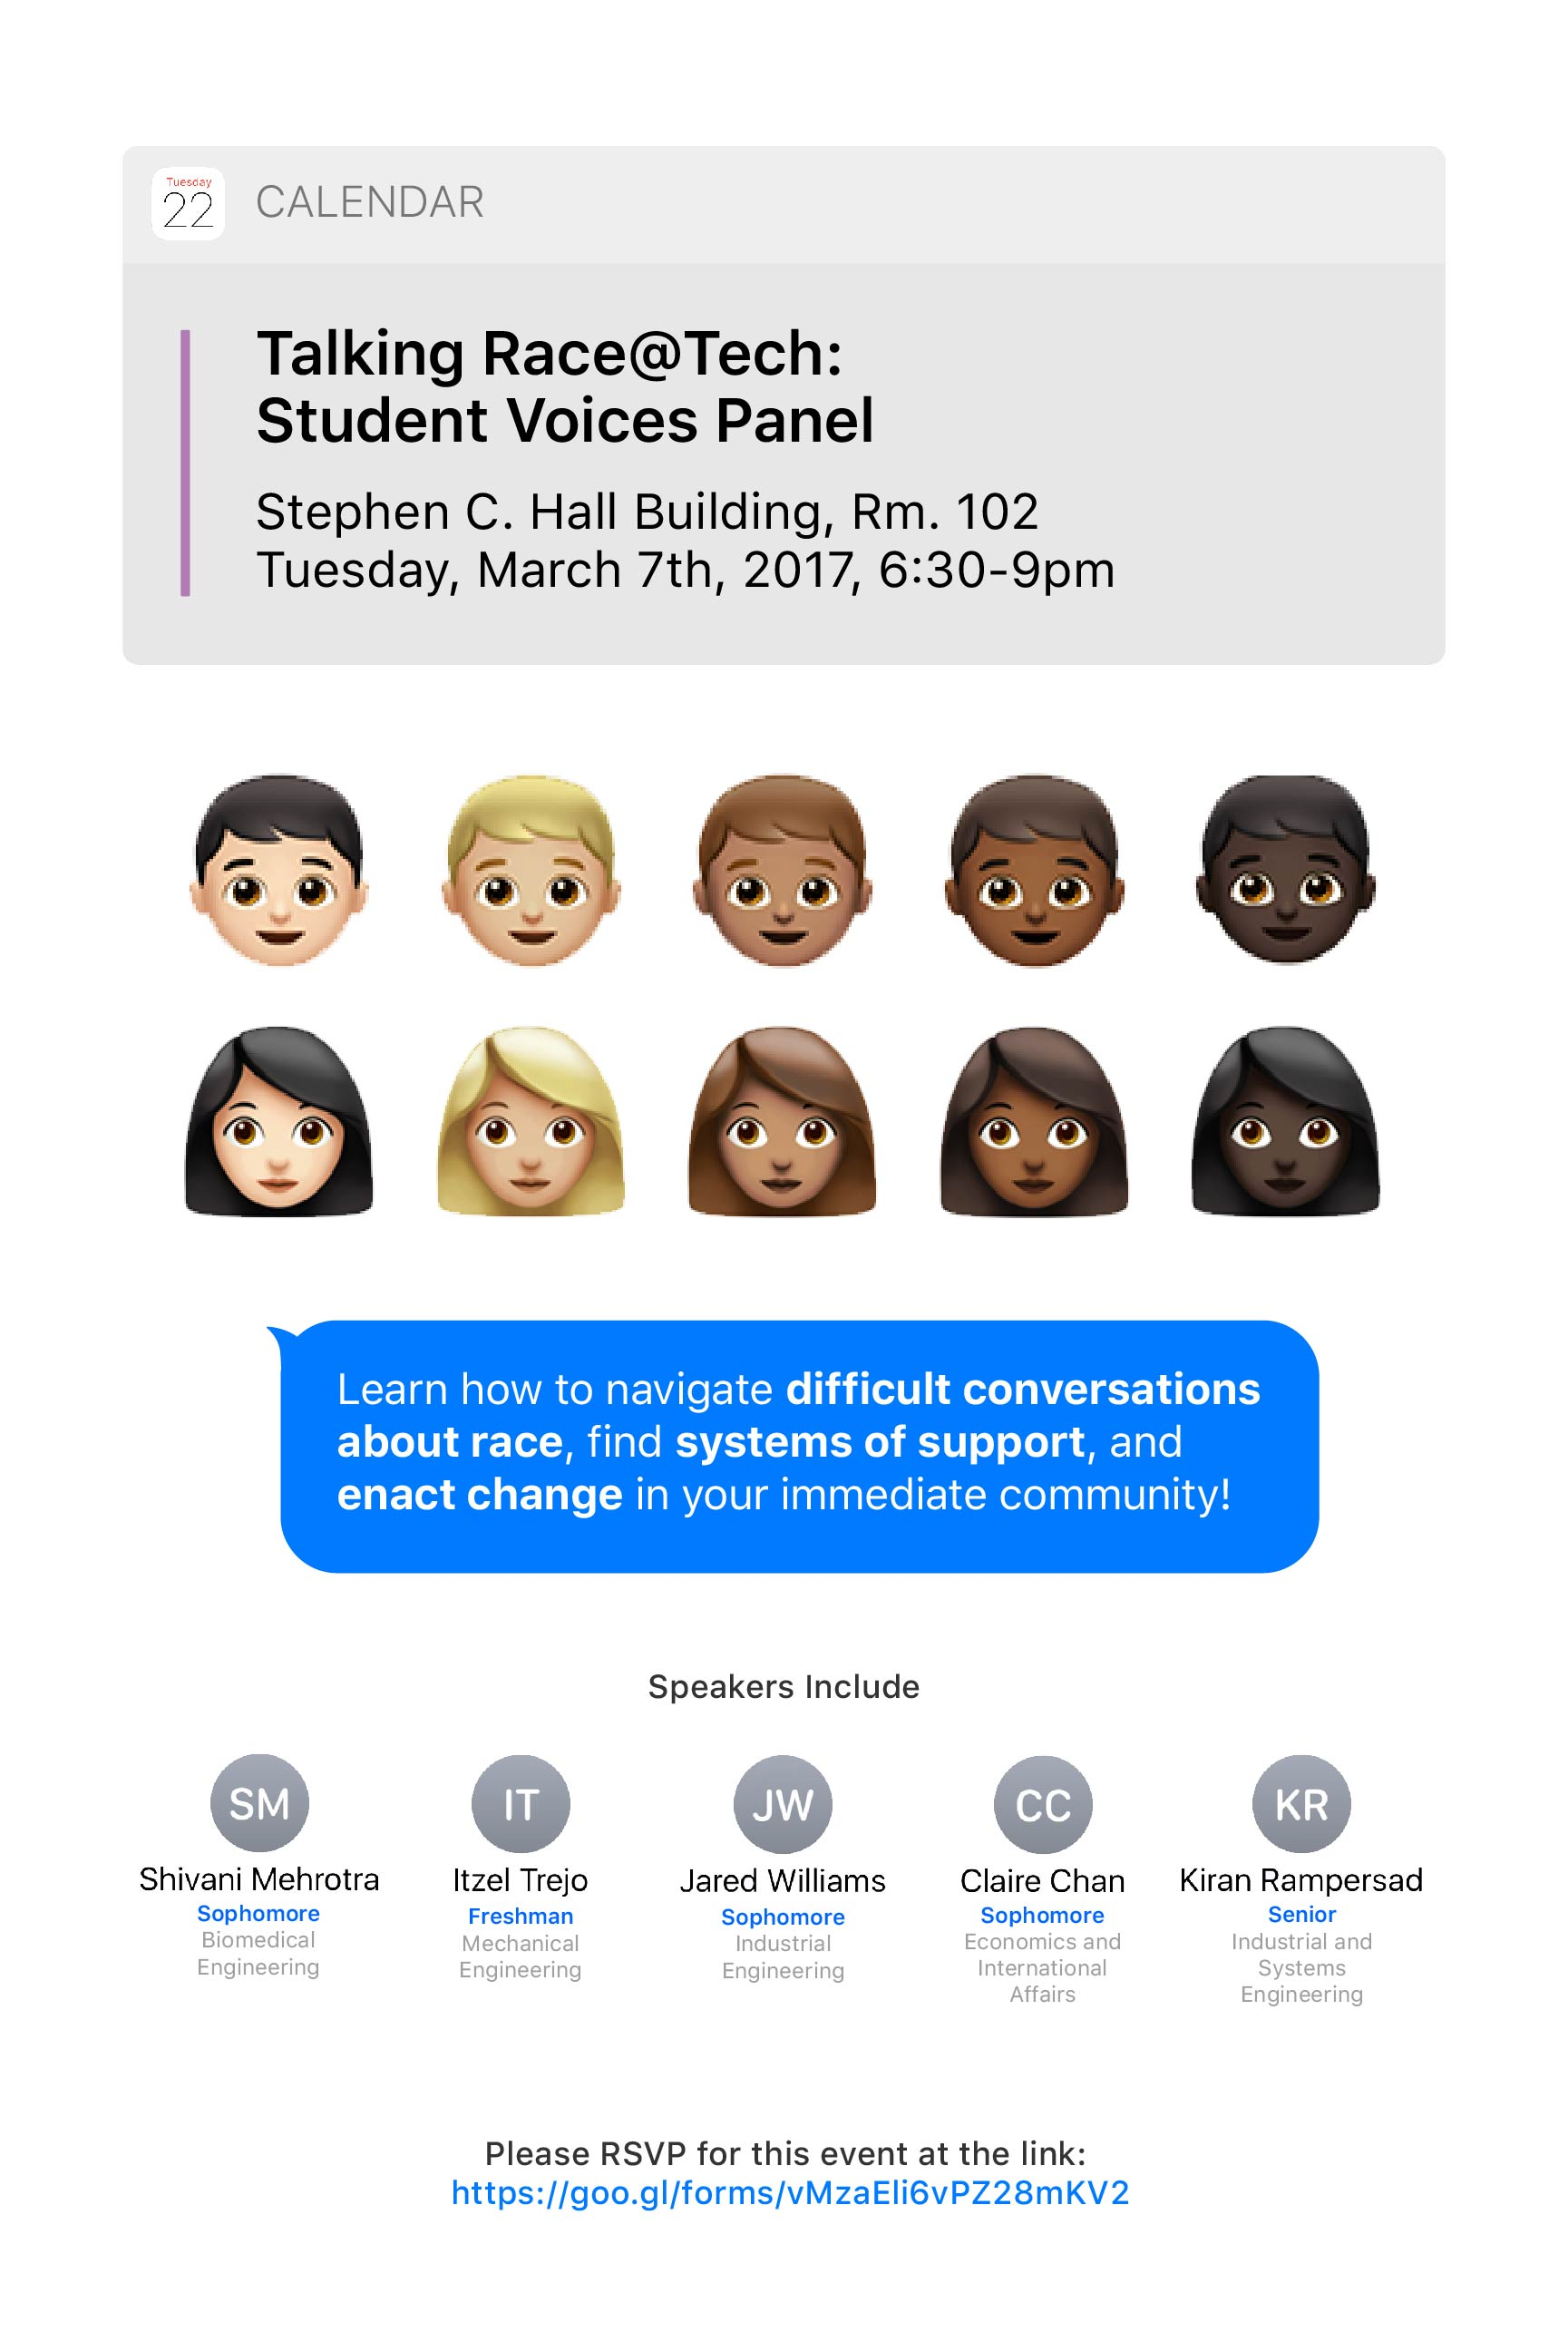 Diversity Panel Poster - This poster was created during my time as a studio designer at the CoLab of the Ivan Allen College of Liberal Arts. It was intended to advertise for a student panel focused on diversity and racial inclusion on campus.I was inspired by the diversity found in the Emoji keyboard's iconography and based the poster theme off of Apple's design language.